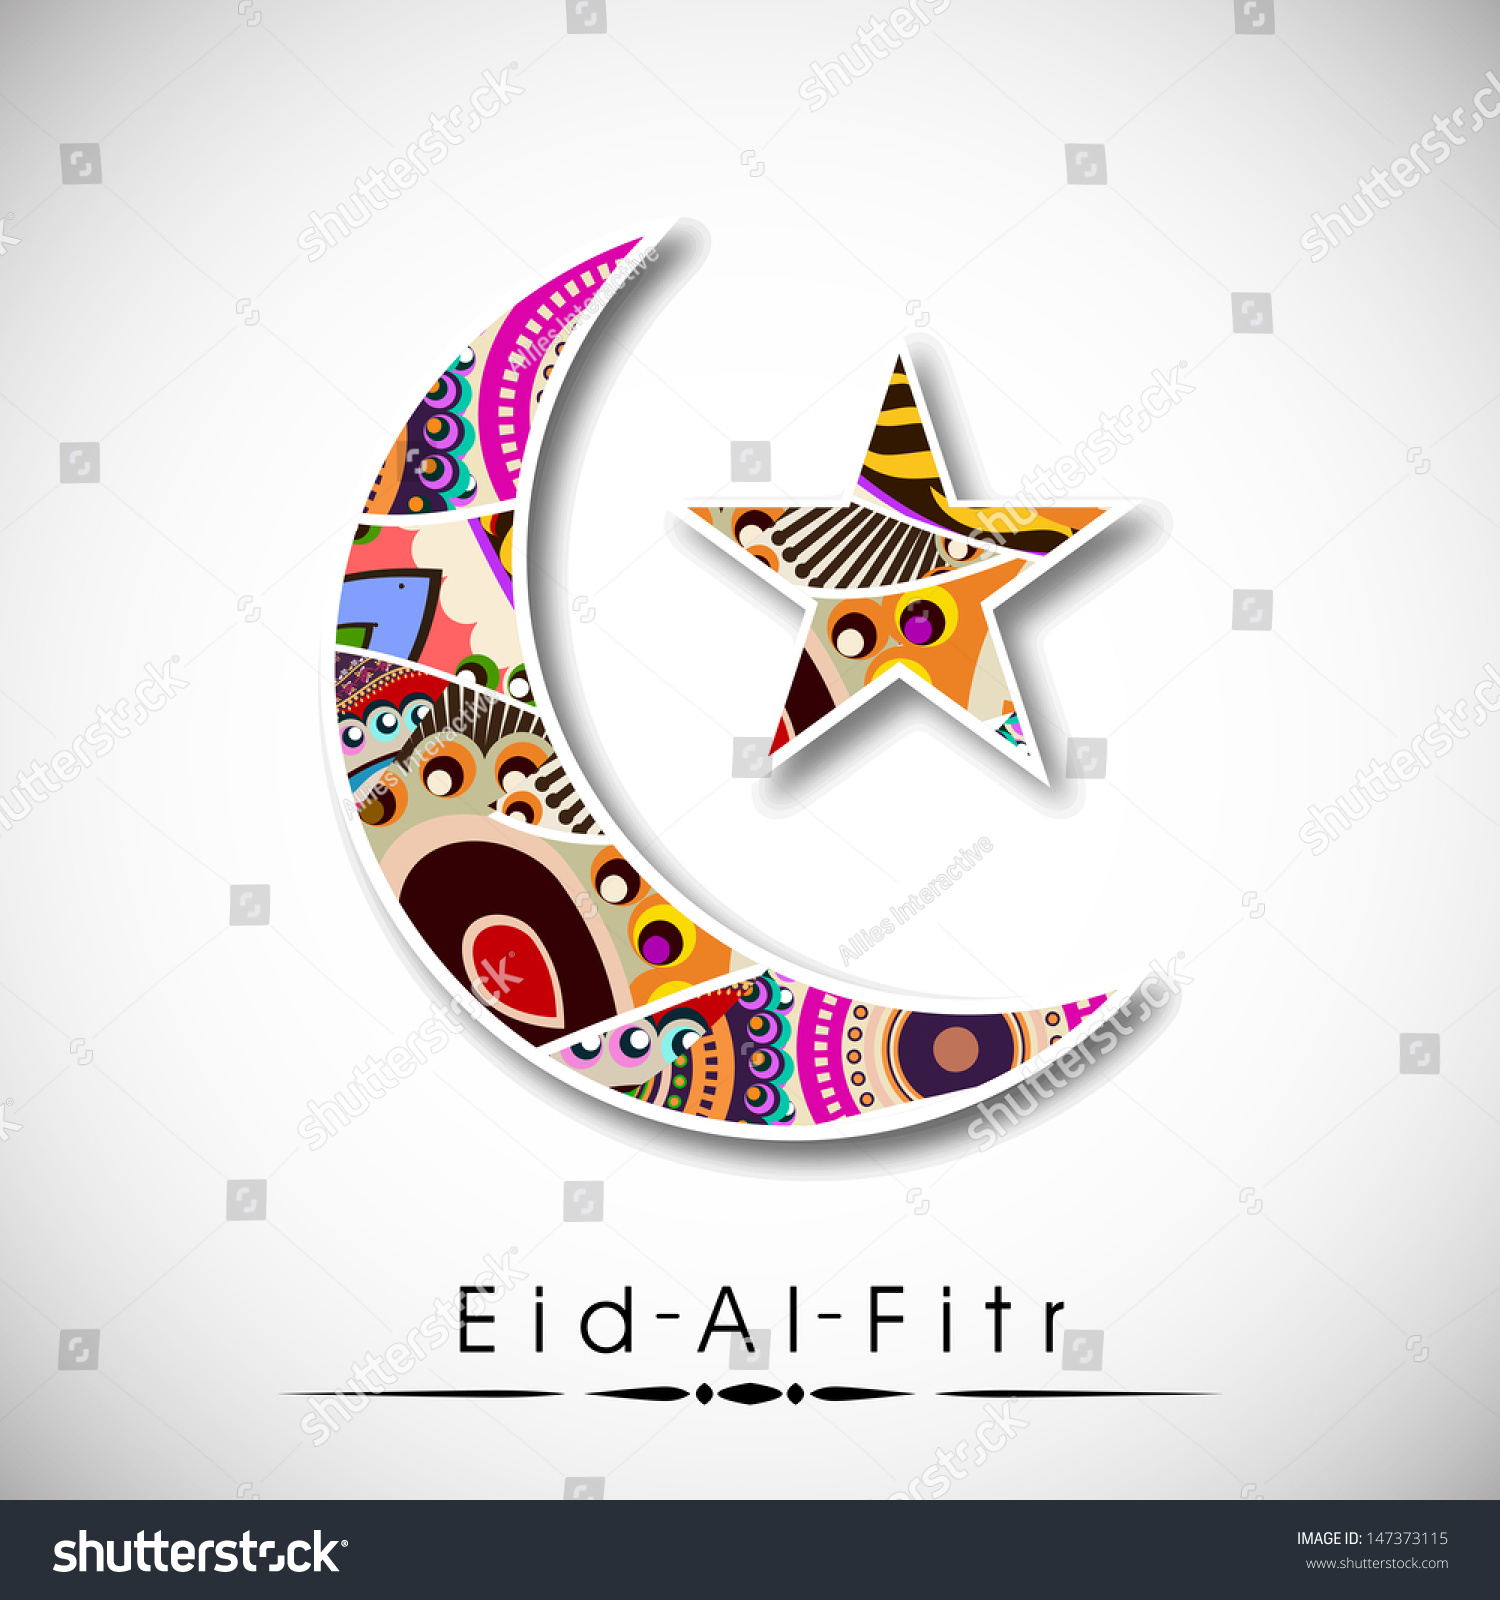 Beautiful Small House Eid Al-Fitr Decorations - stock-vector-muslim-community-festival-eid-al-fitr-eid-mubarak-with-floral-decorated-moon-and-star-on-abstract-147373115  Pictures_838899 .jpg